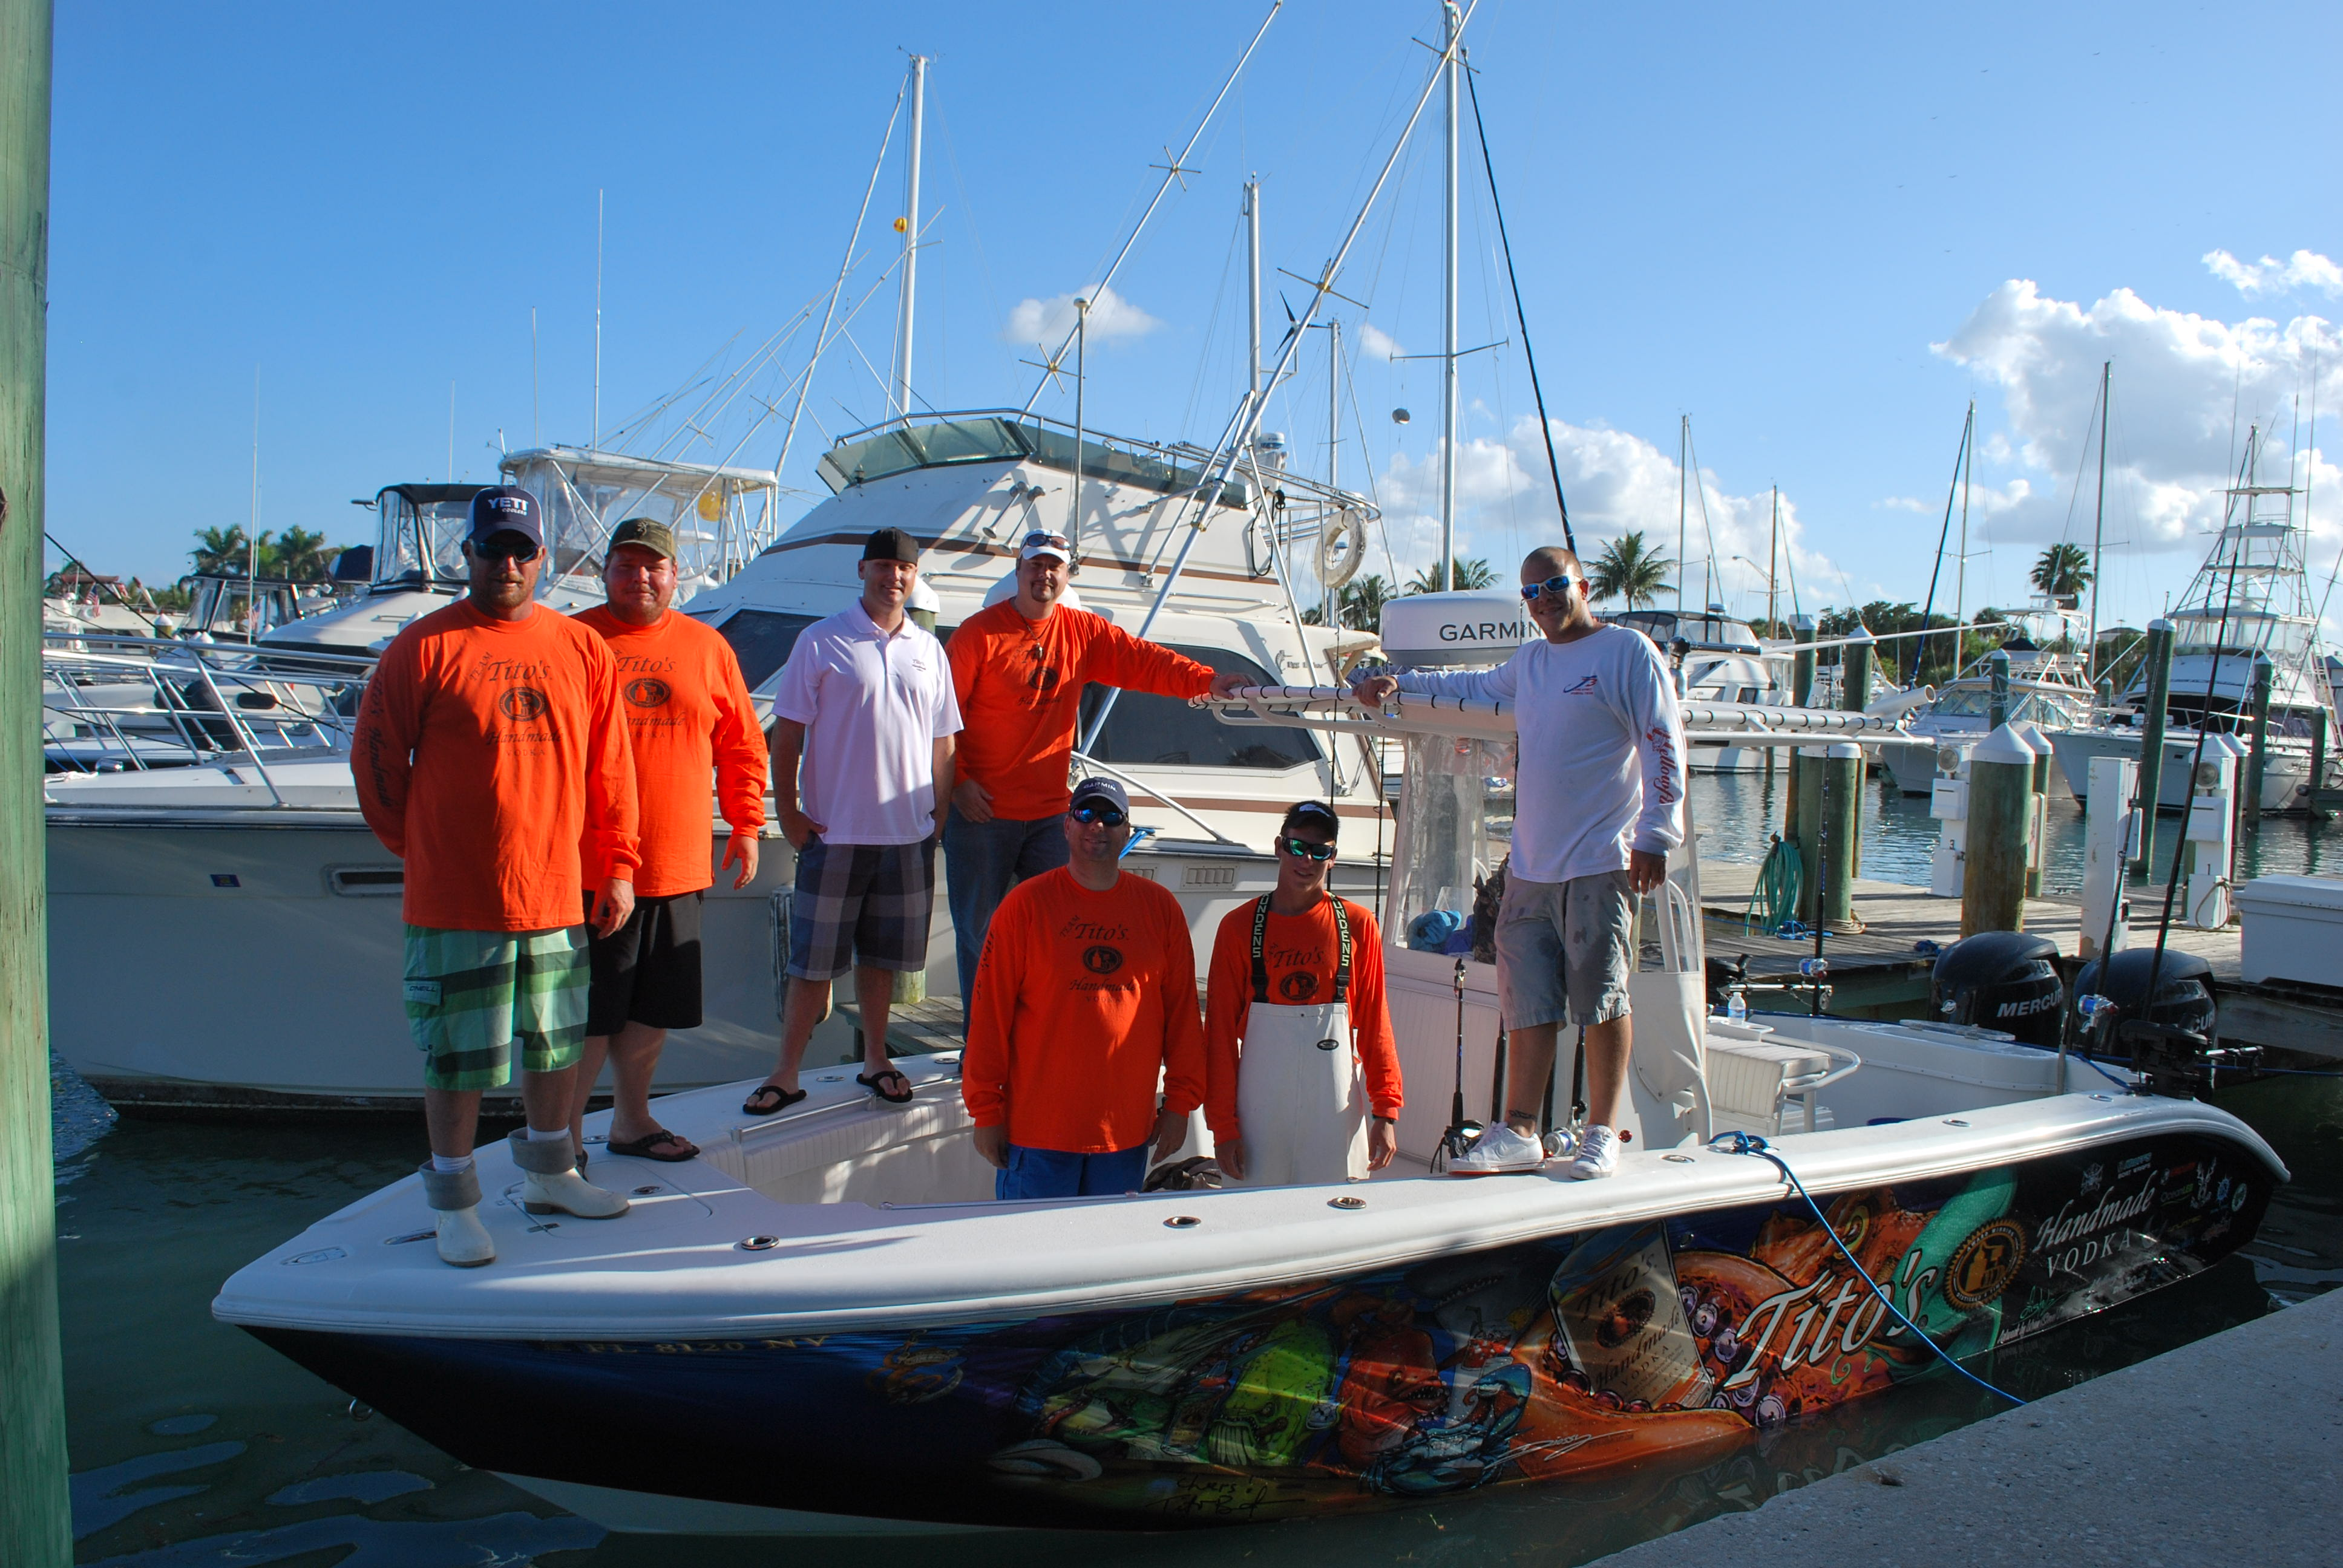 This is the first group picture of The Tito's Handmade Vodka Fishing Team for 2013